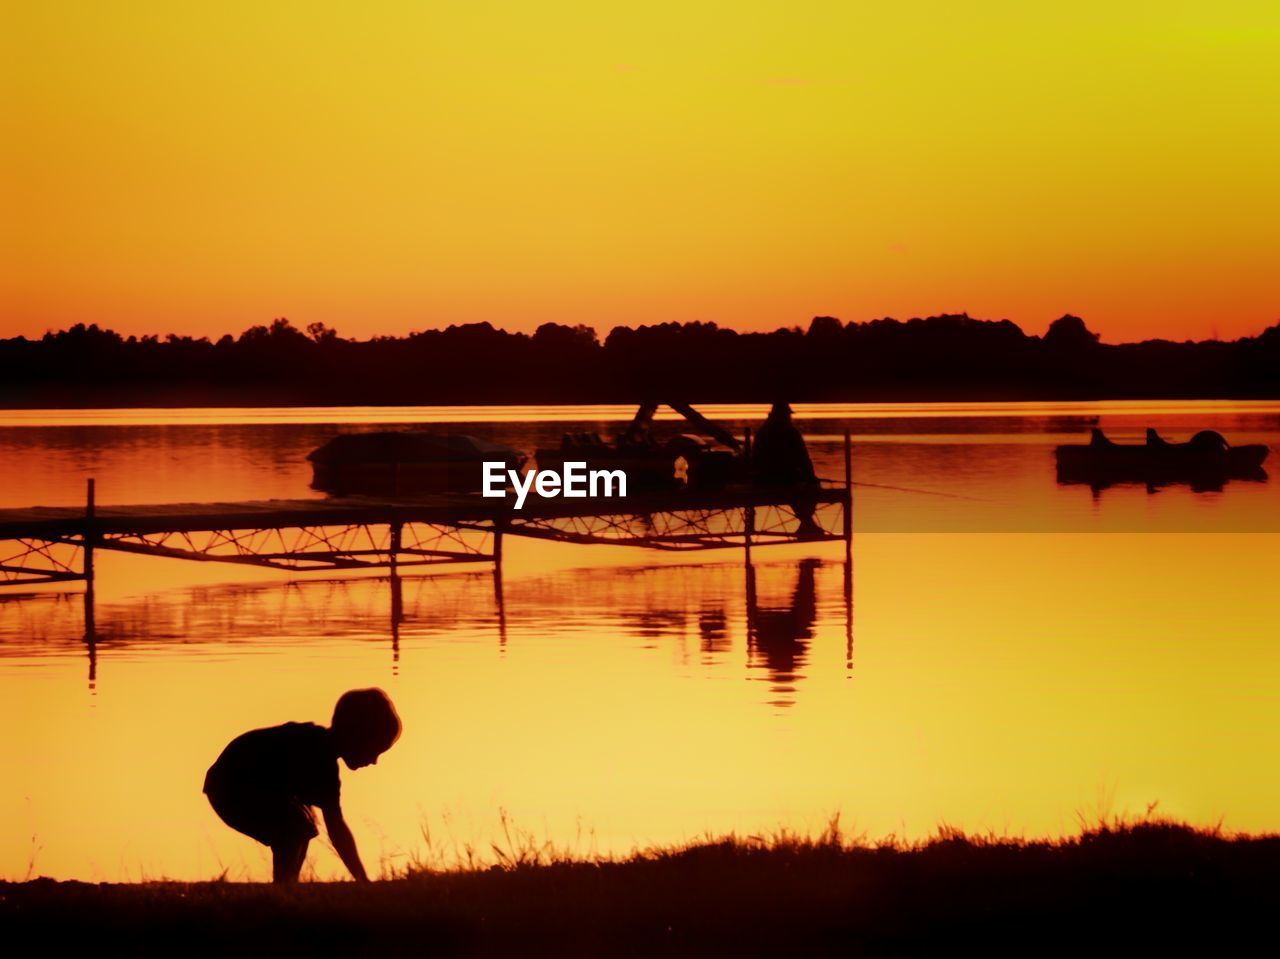 sunset, silhouette, water, orange color, reflection, nature, beauty in nature, lake, tranquility, scenics, outdoors, tranquil scene, sky, men, one person, real people, clear sky, tree, full length, farmer, nautical vessel, day, people